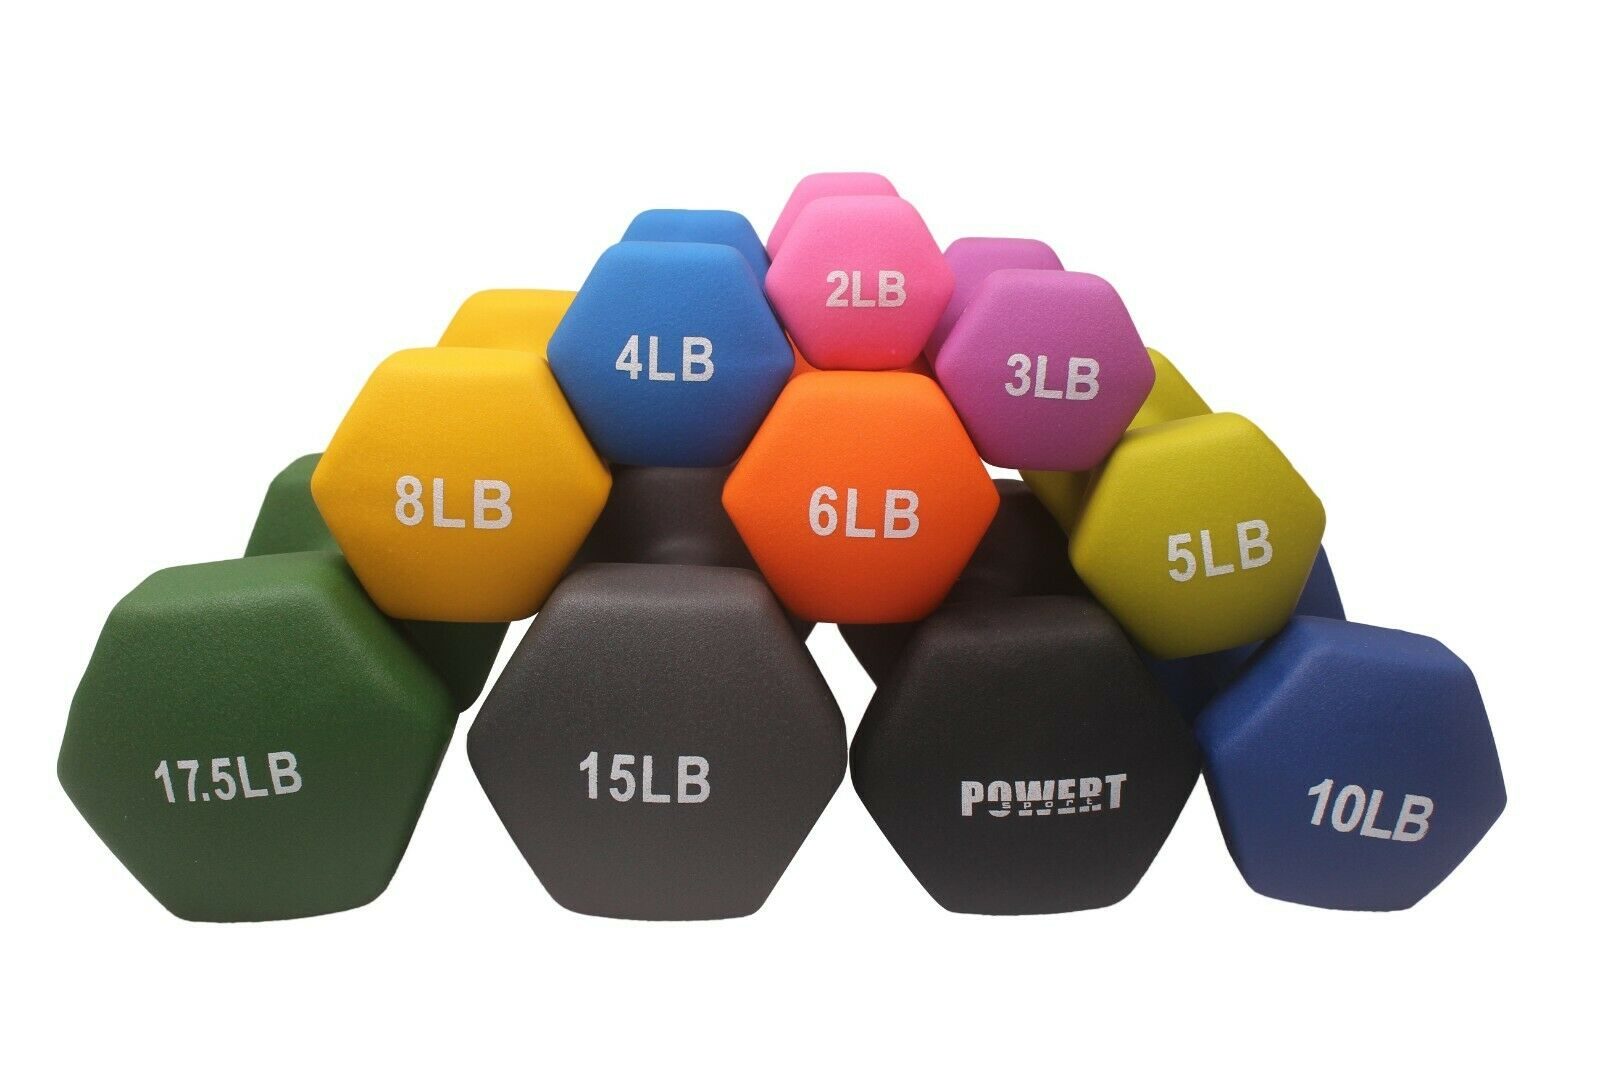 POWERT HEX Neoprene Coated Colorful Dumbbell Weight Lifting Training–One Pair